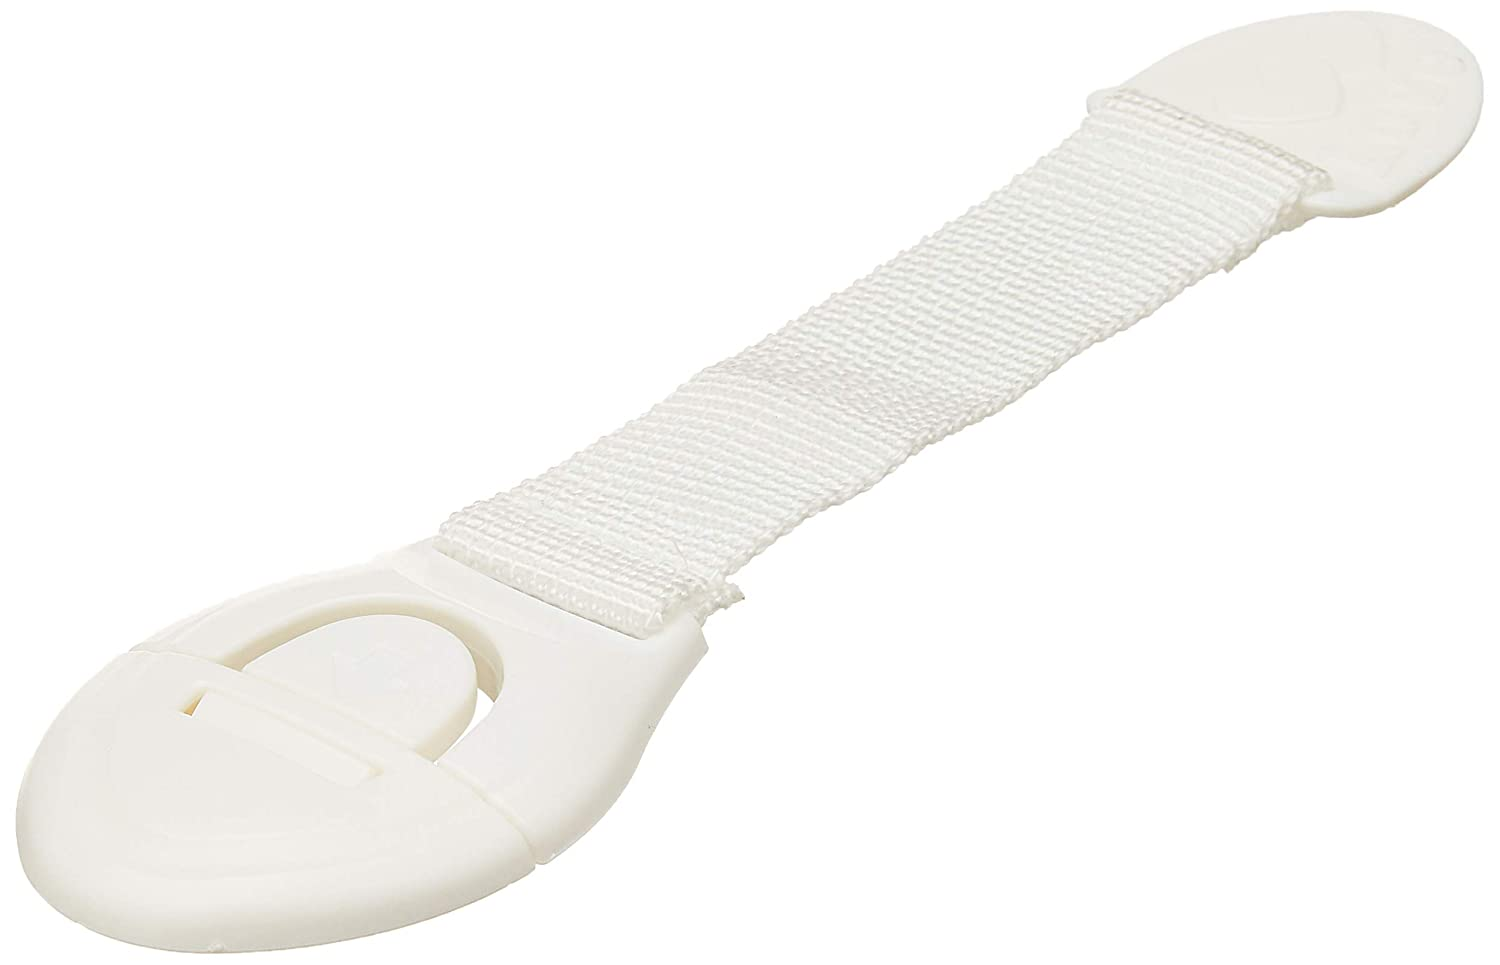 SYGA Infant Safety Lock (White) - Pack of 12